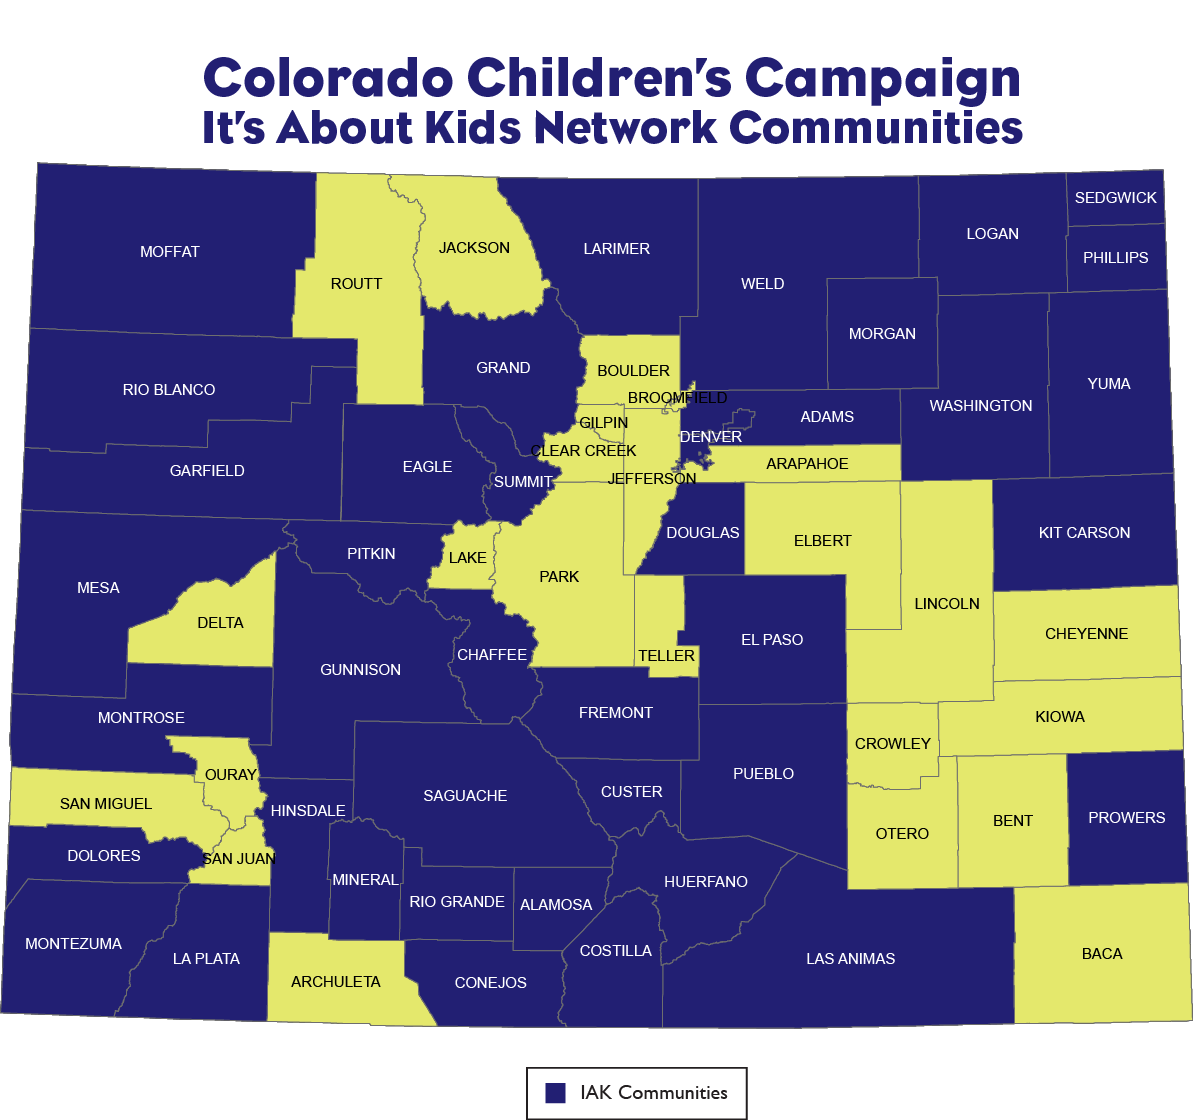 It S About Kids Network Continues To Grow Colorado Children S Campaign